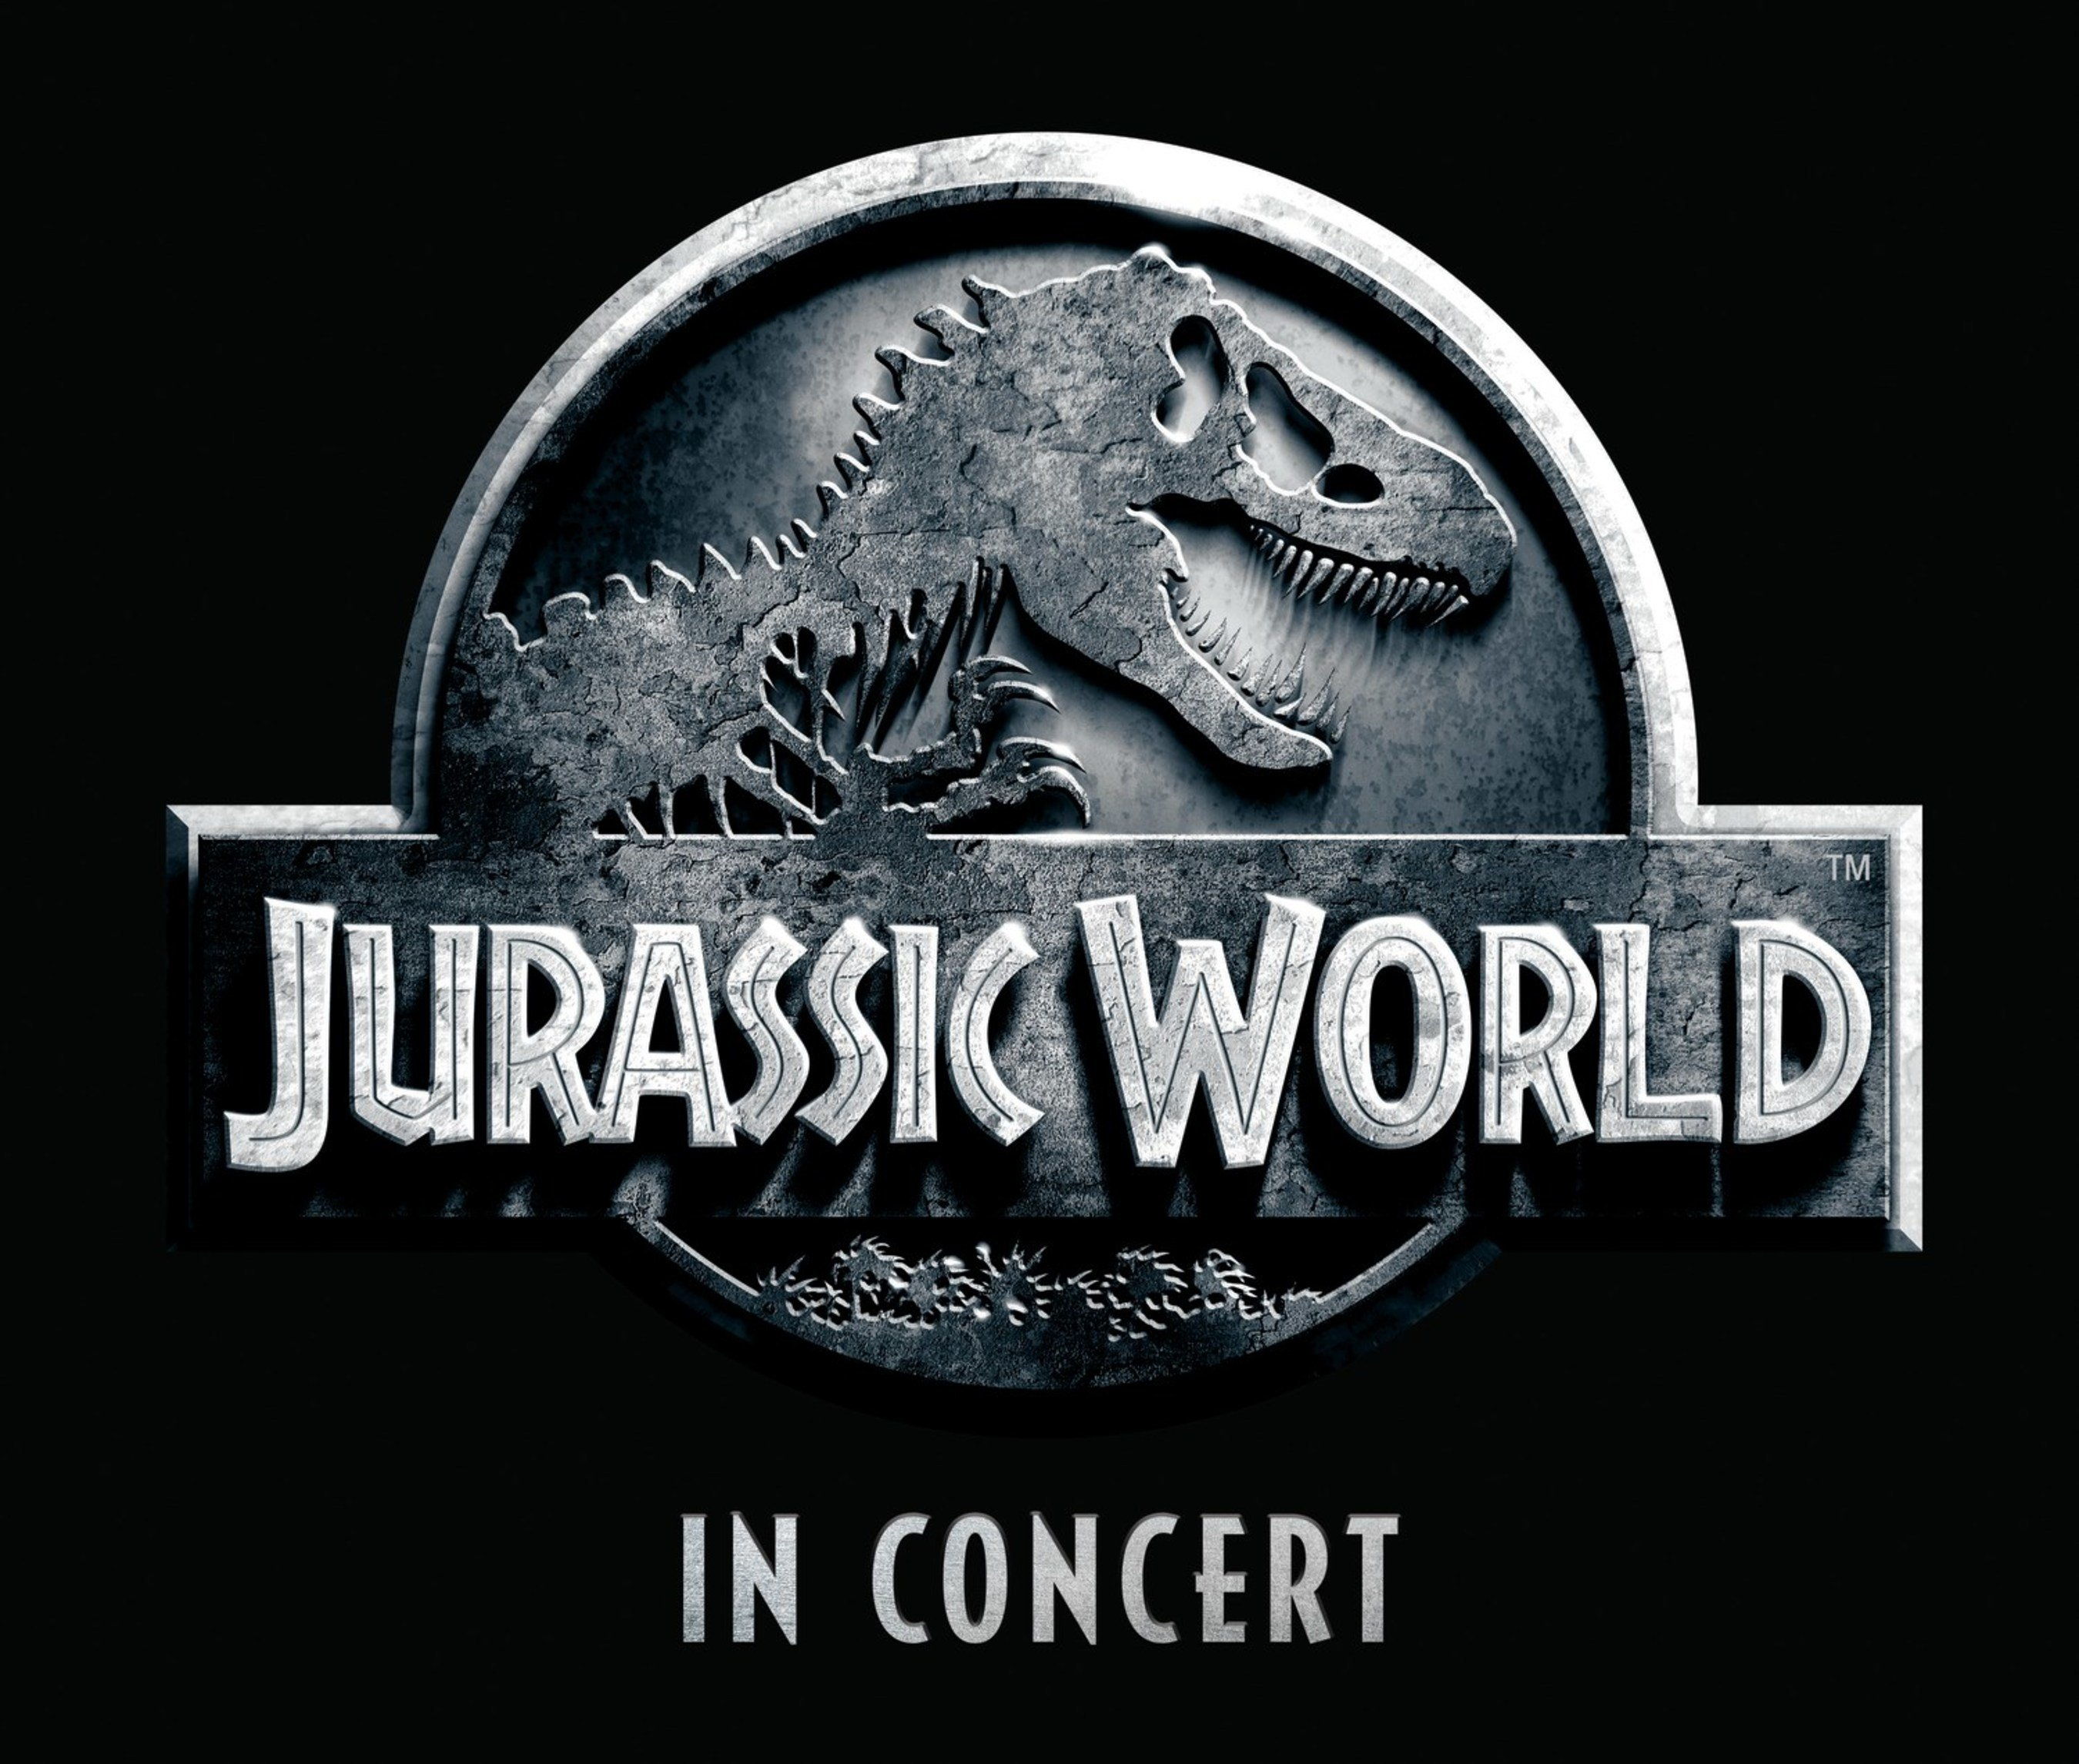 National Symphony Orchestra Performs Jurassic World in Concert